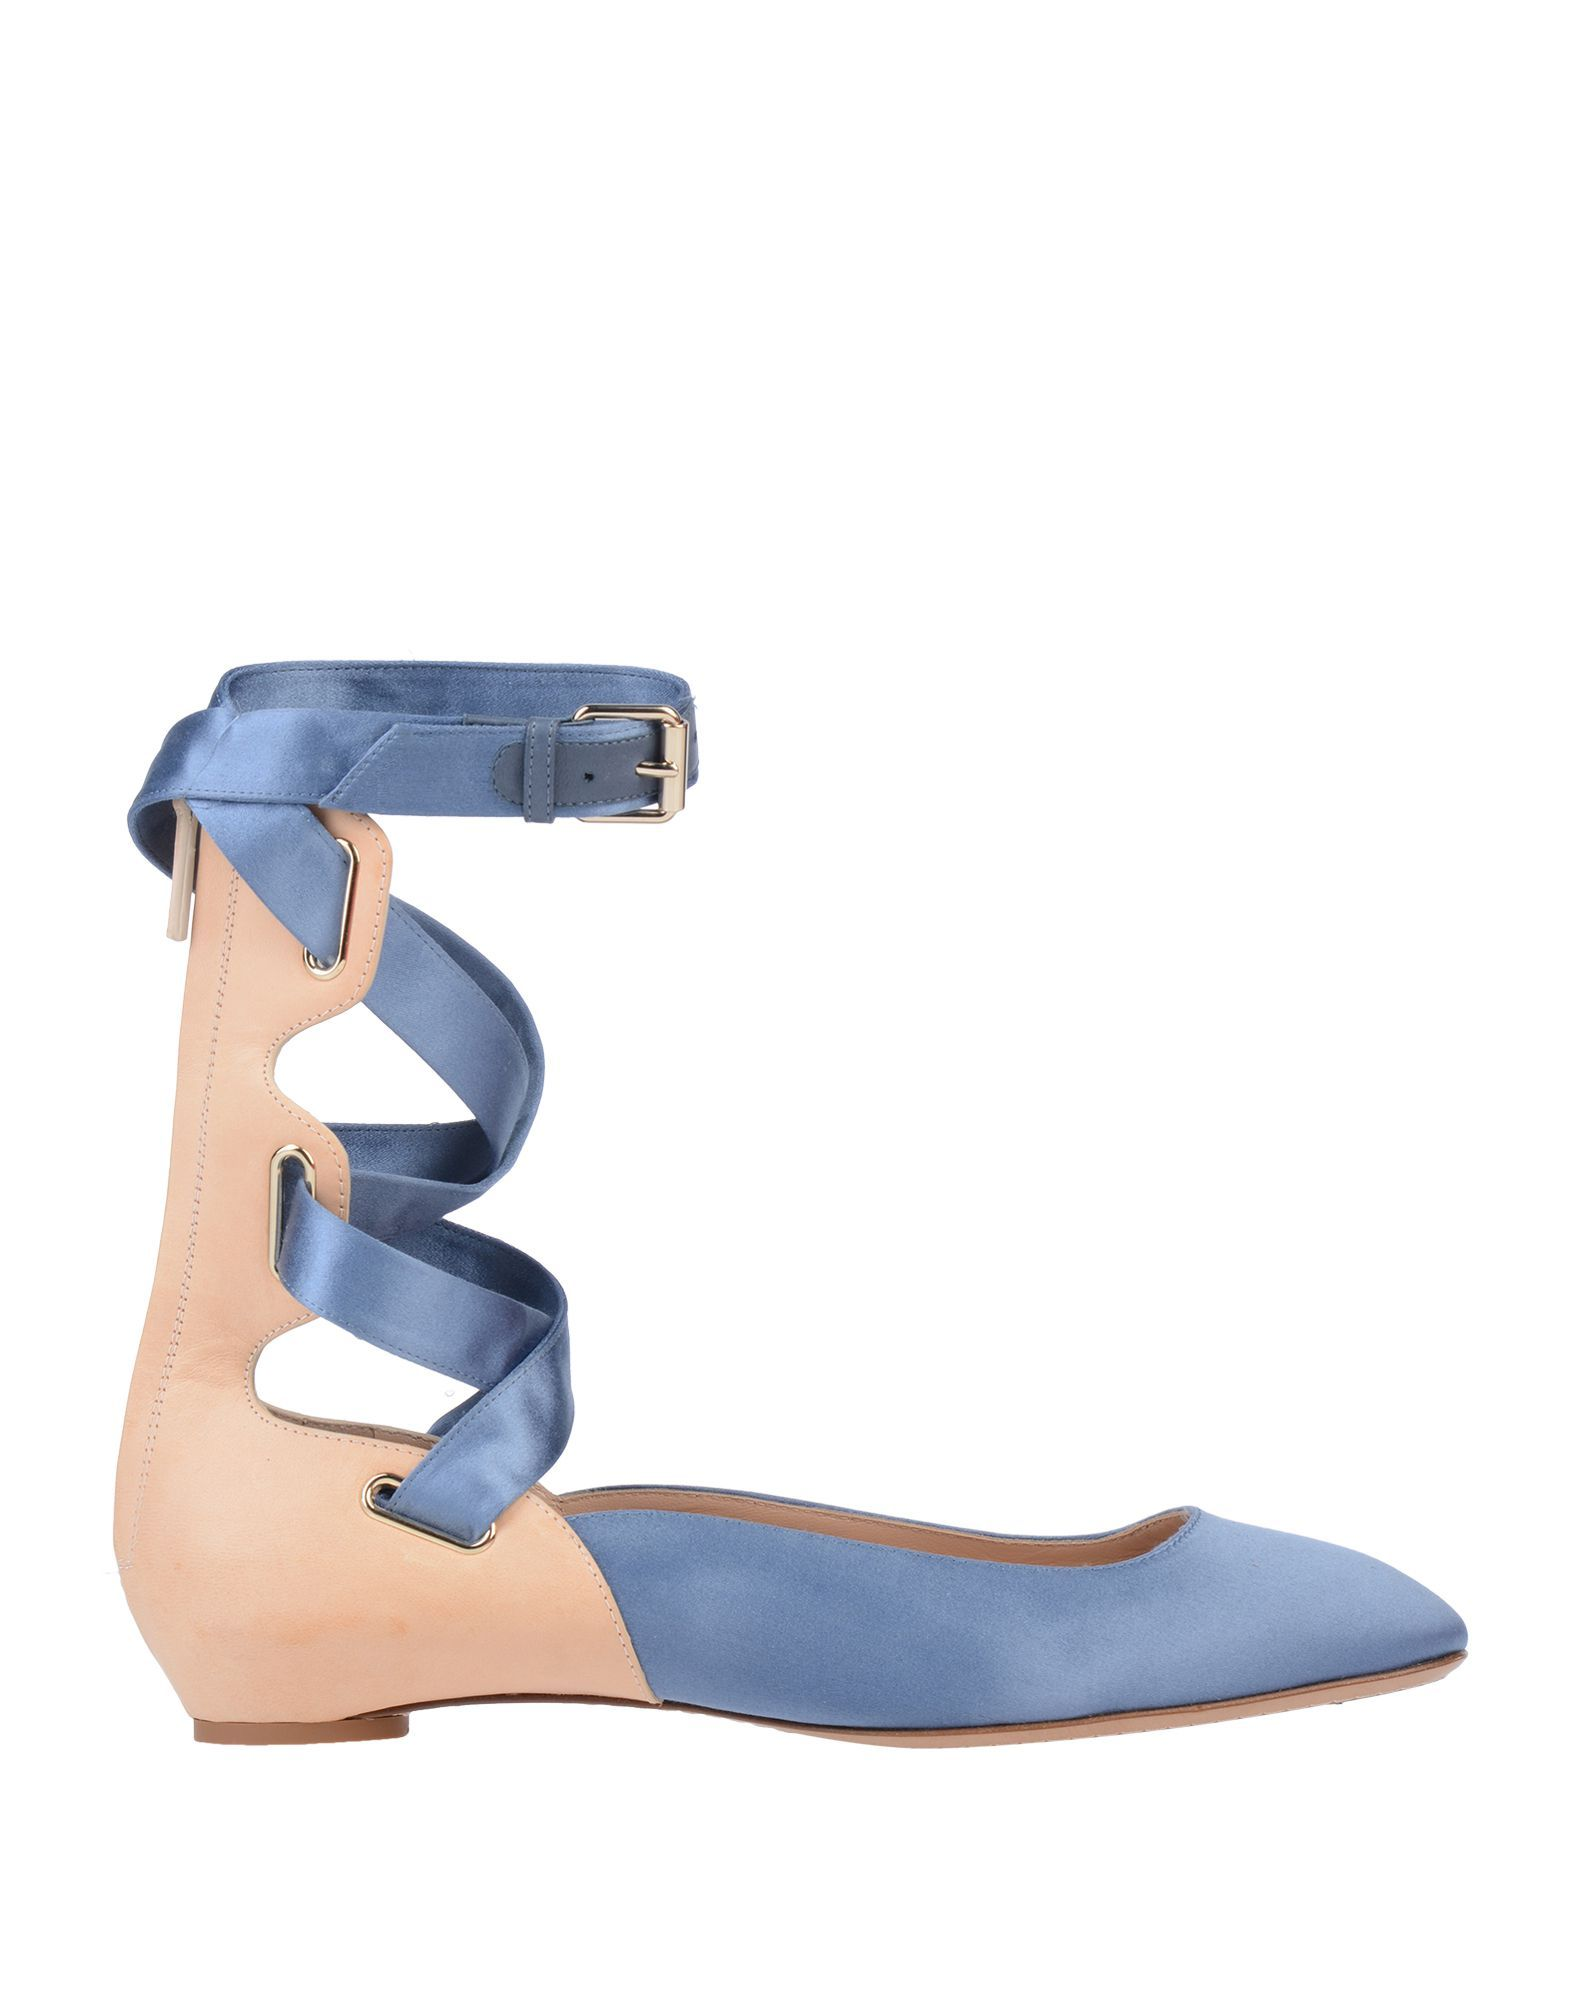 Valentino Garavani Slate Blue Leather Ballet Flats With Lace Up Detail